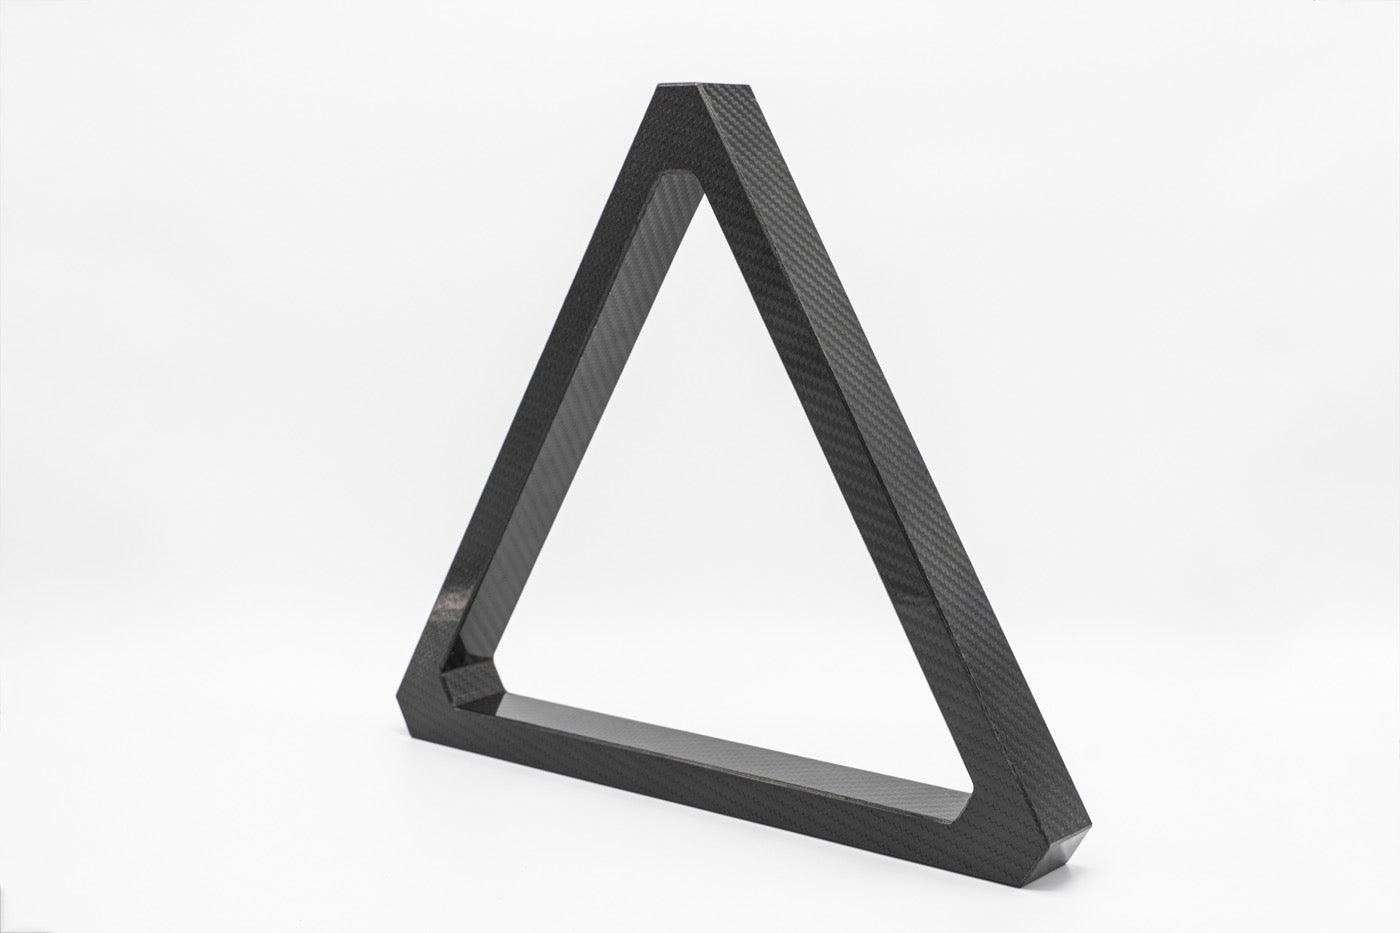 Custom Carbon Fiber Triangle Rack - Blatt Billiards